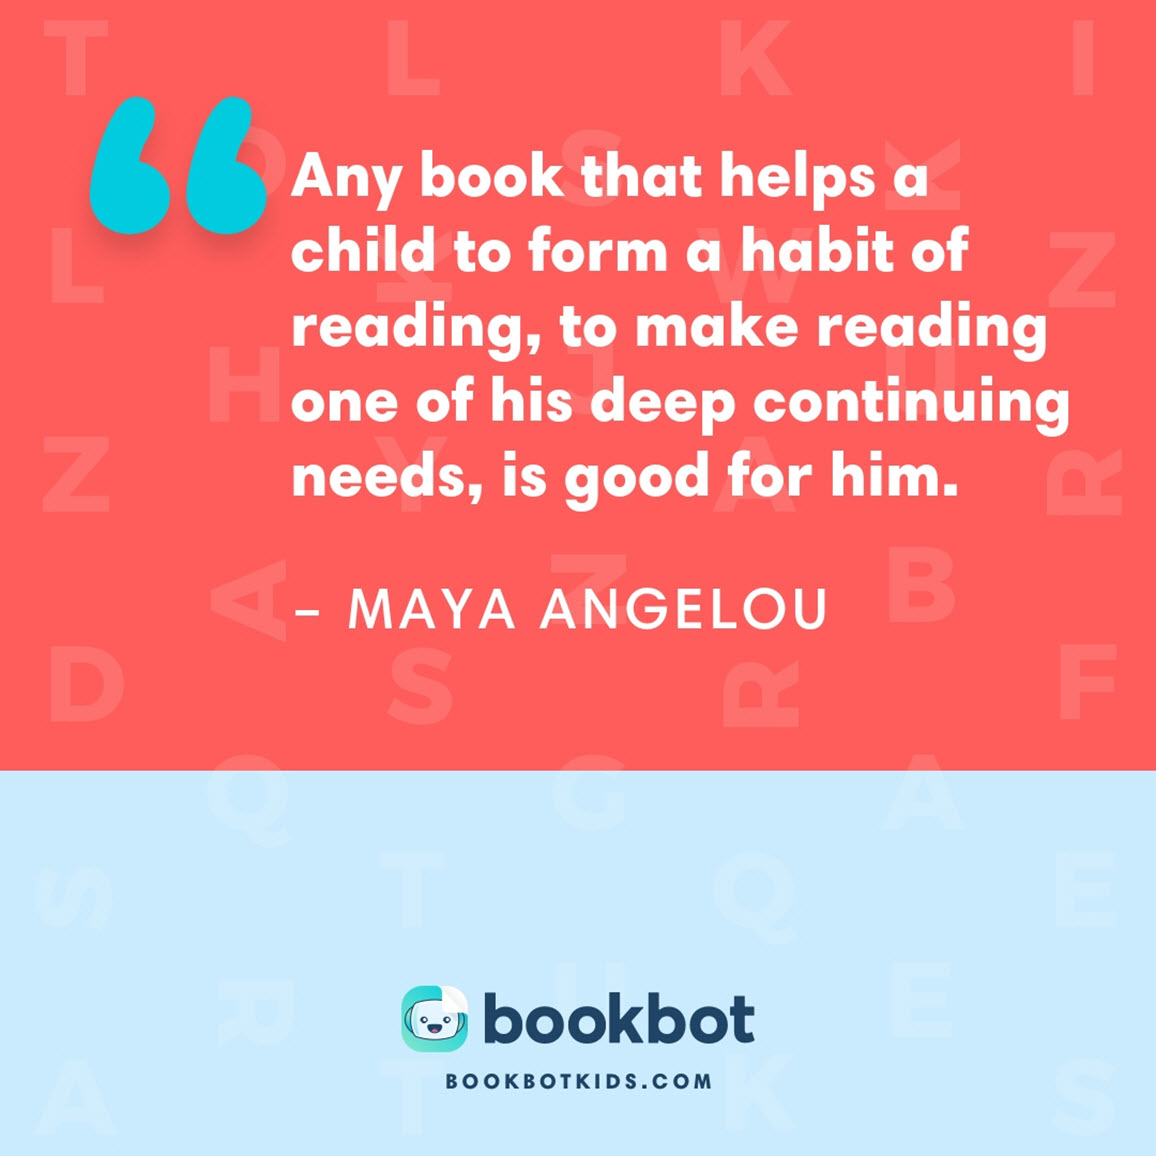 Any book that helps a child to form a habit of reading, to make reading one of his deep continuing needs, is good for him. – Maya Angelou